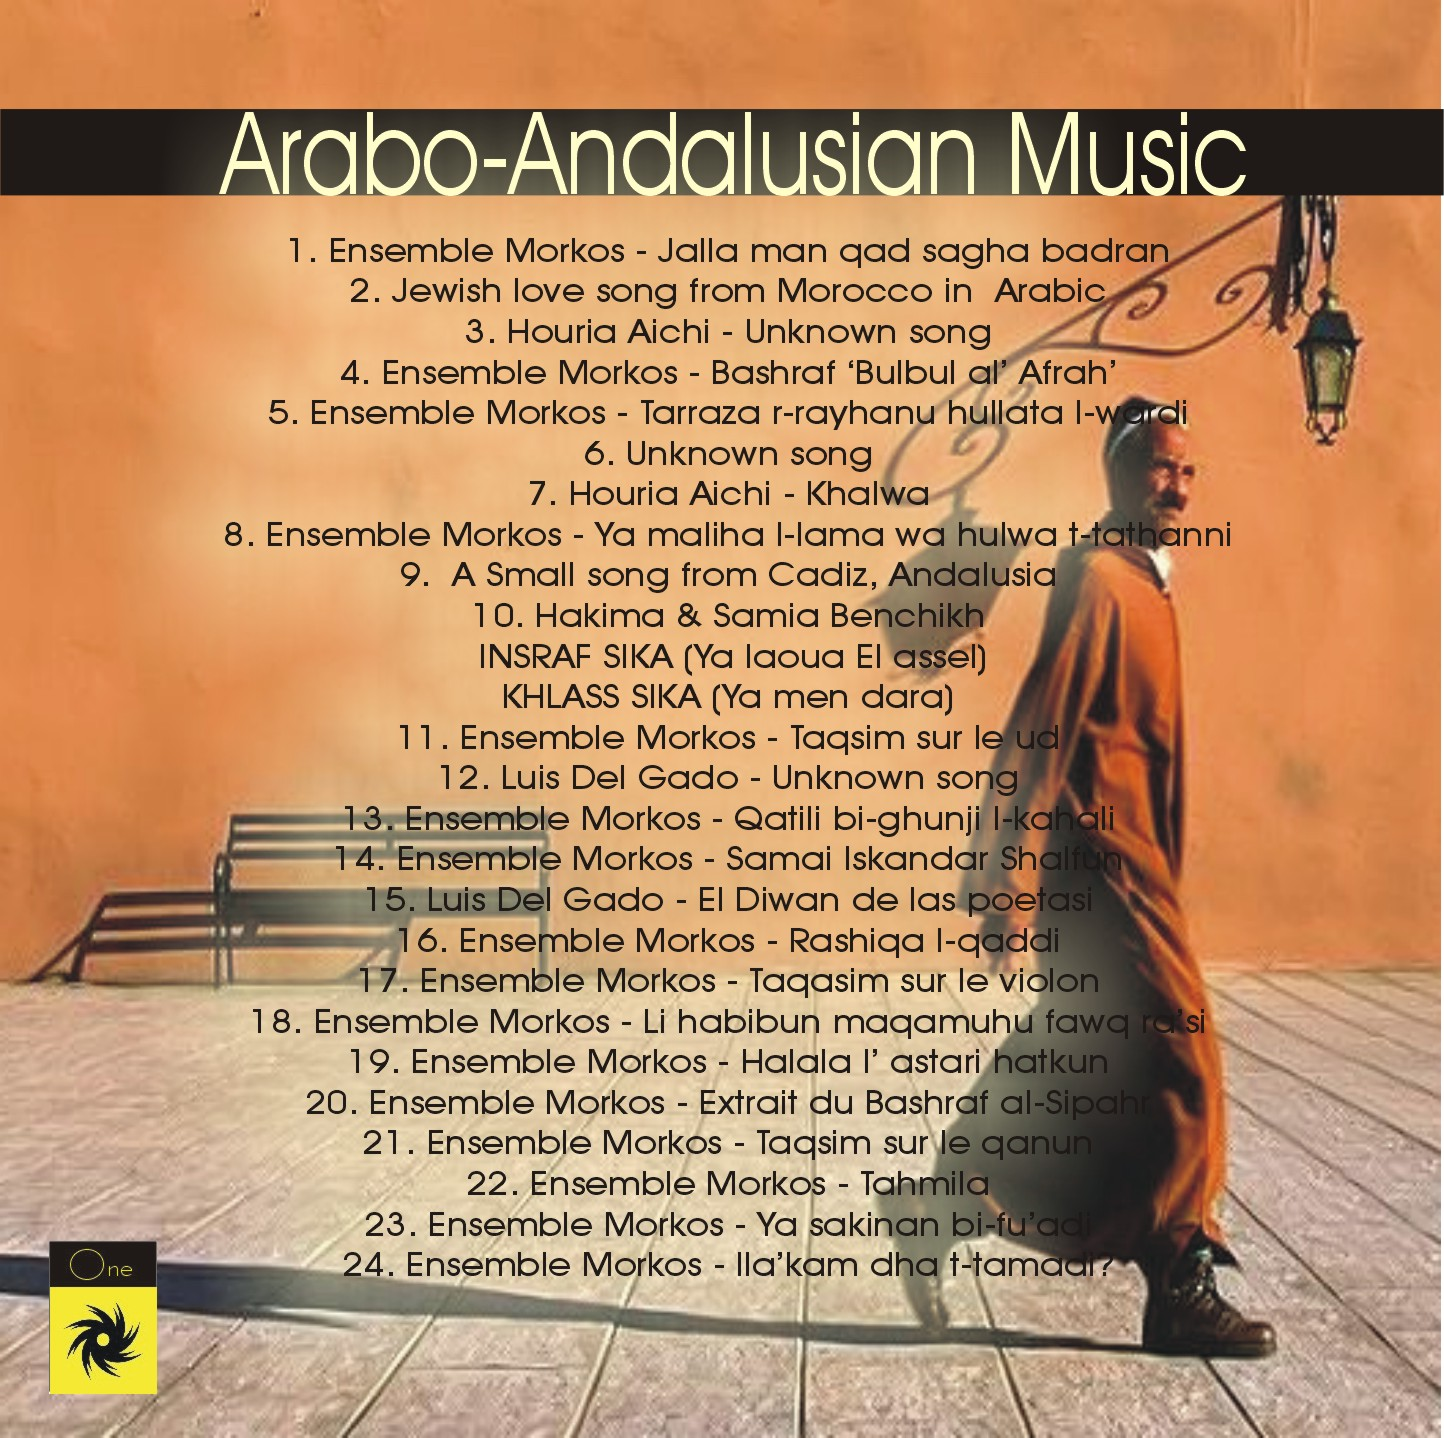 ARABO ANDALUSIAN MUSIC - various artists